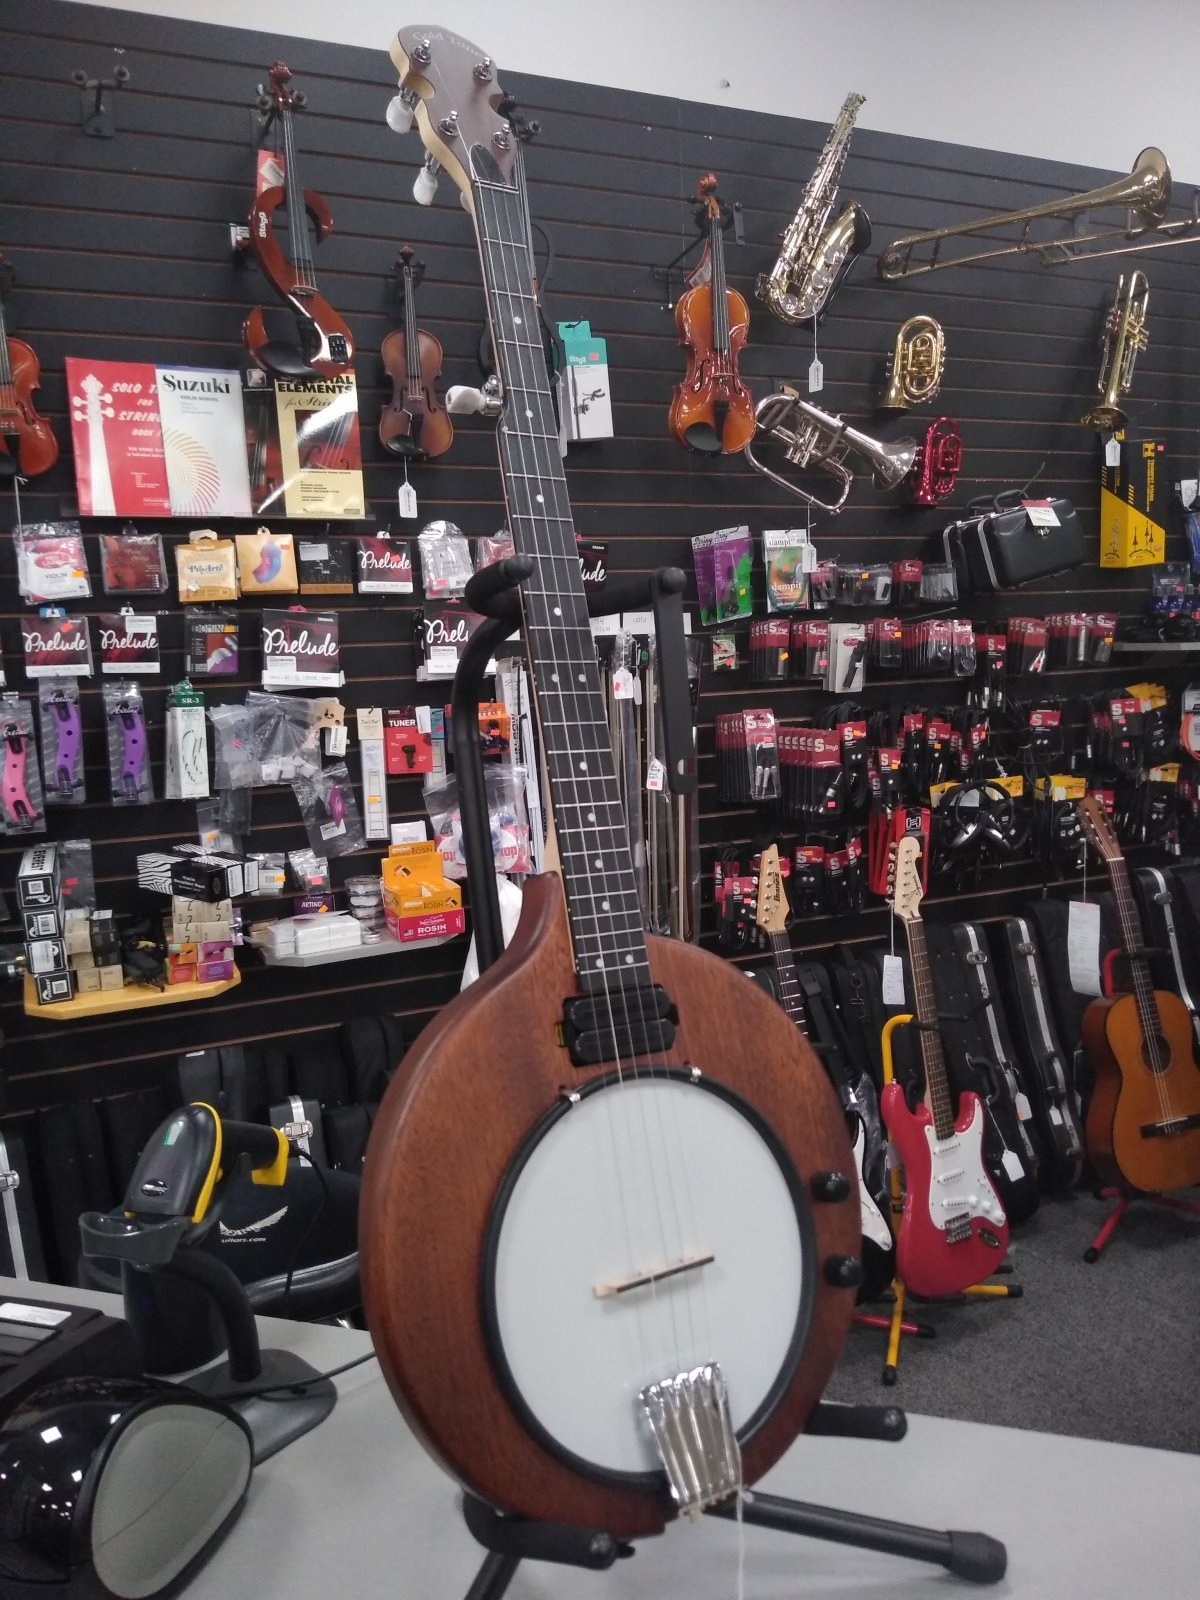 Gold Tone EB-5 Electric Banjo with Gig Bag